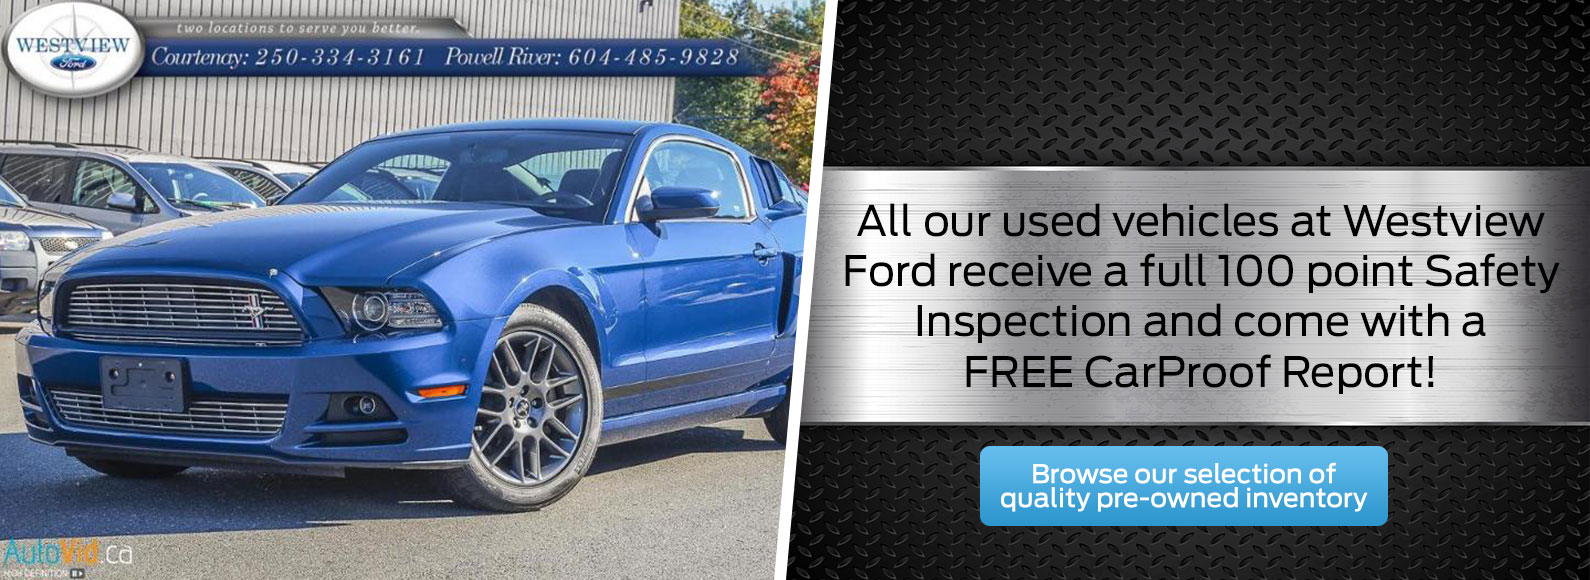 Pre-Owned Inventory at Westview Ford!